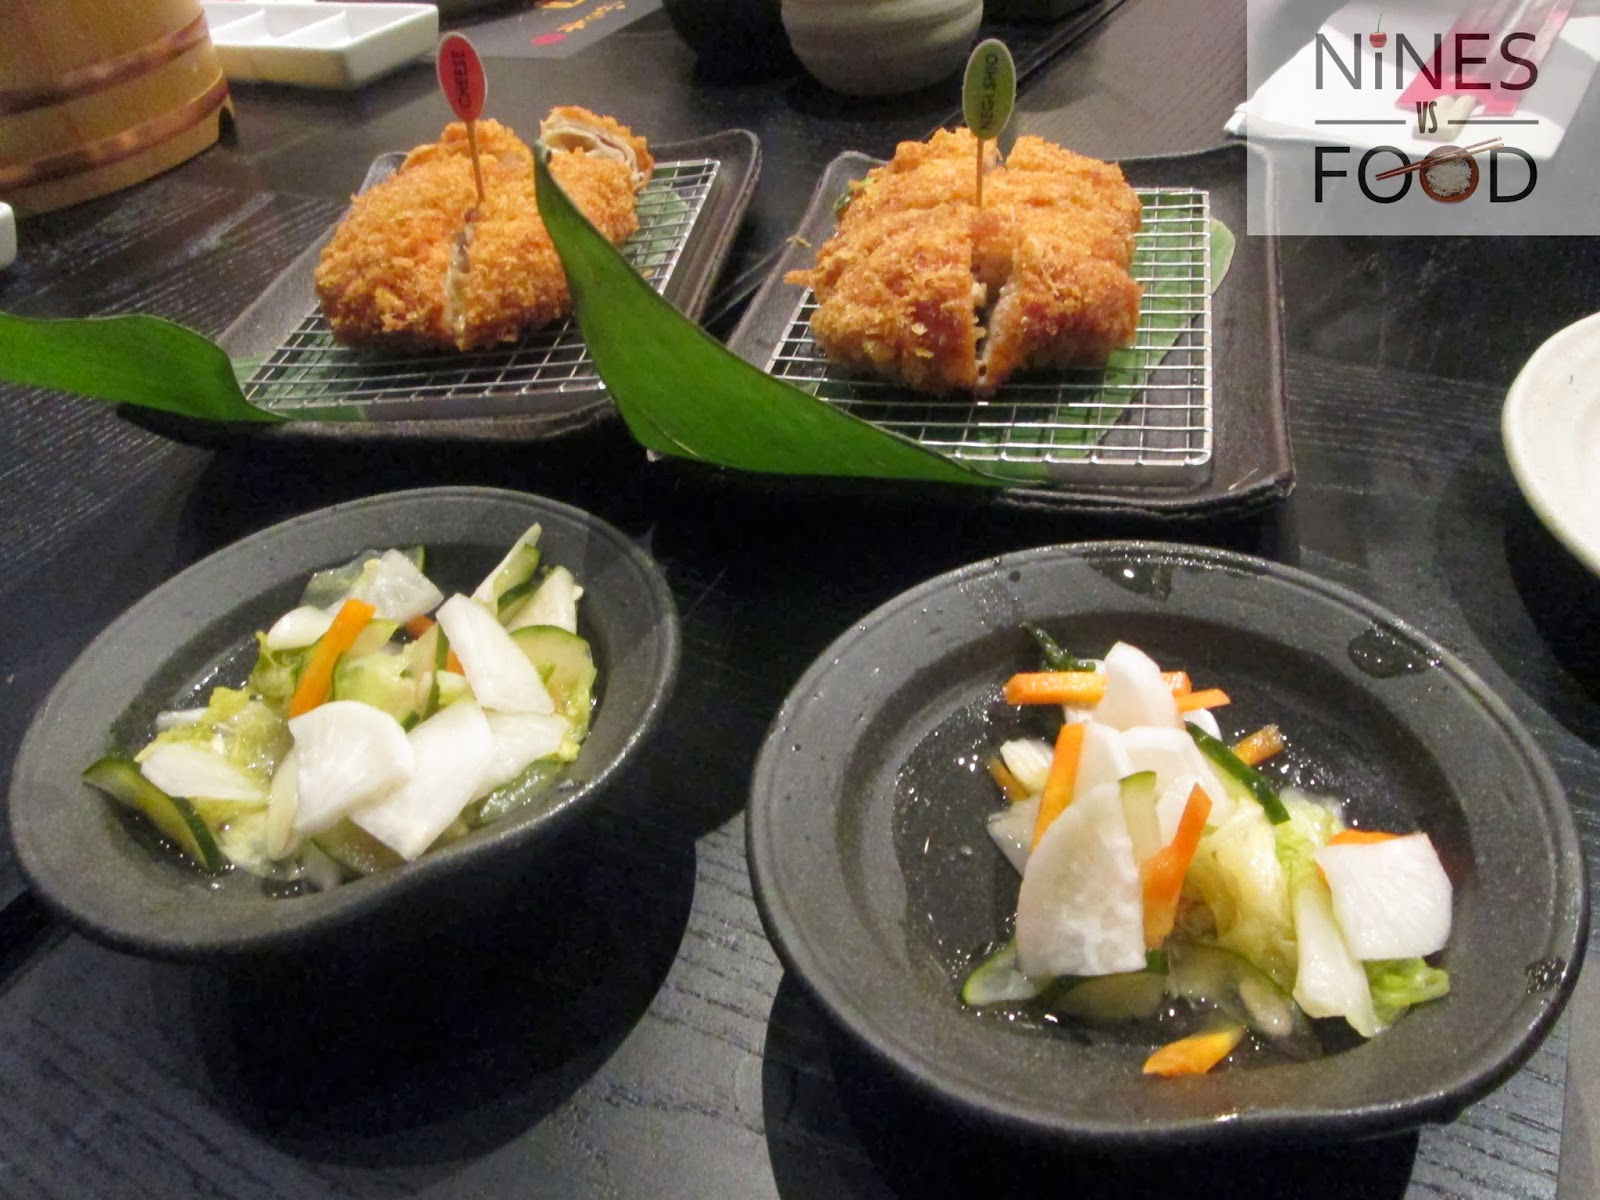 Nines vs. Food - Kimukatsu Manila Philippines-11.jpg